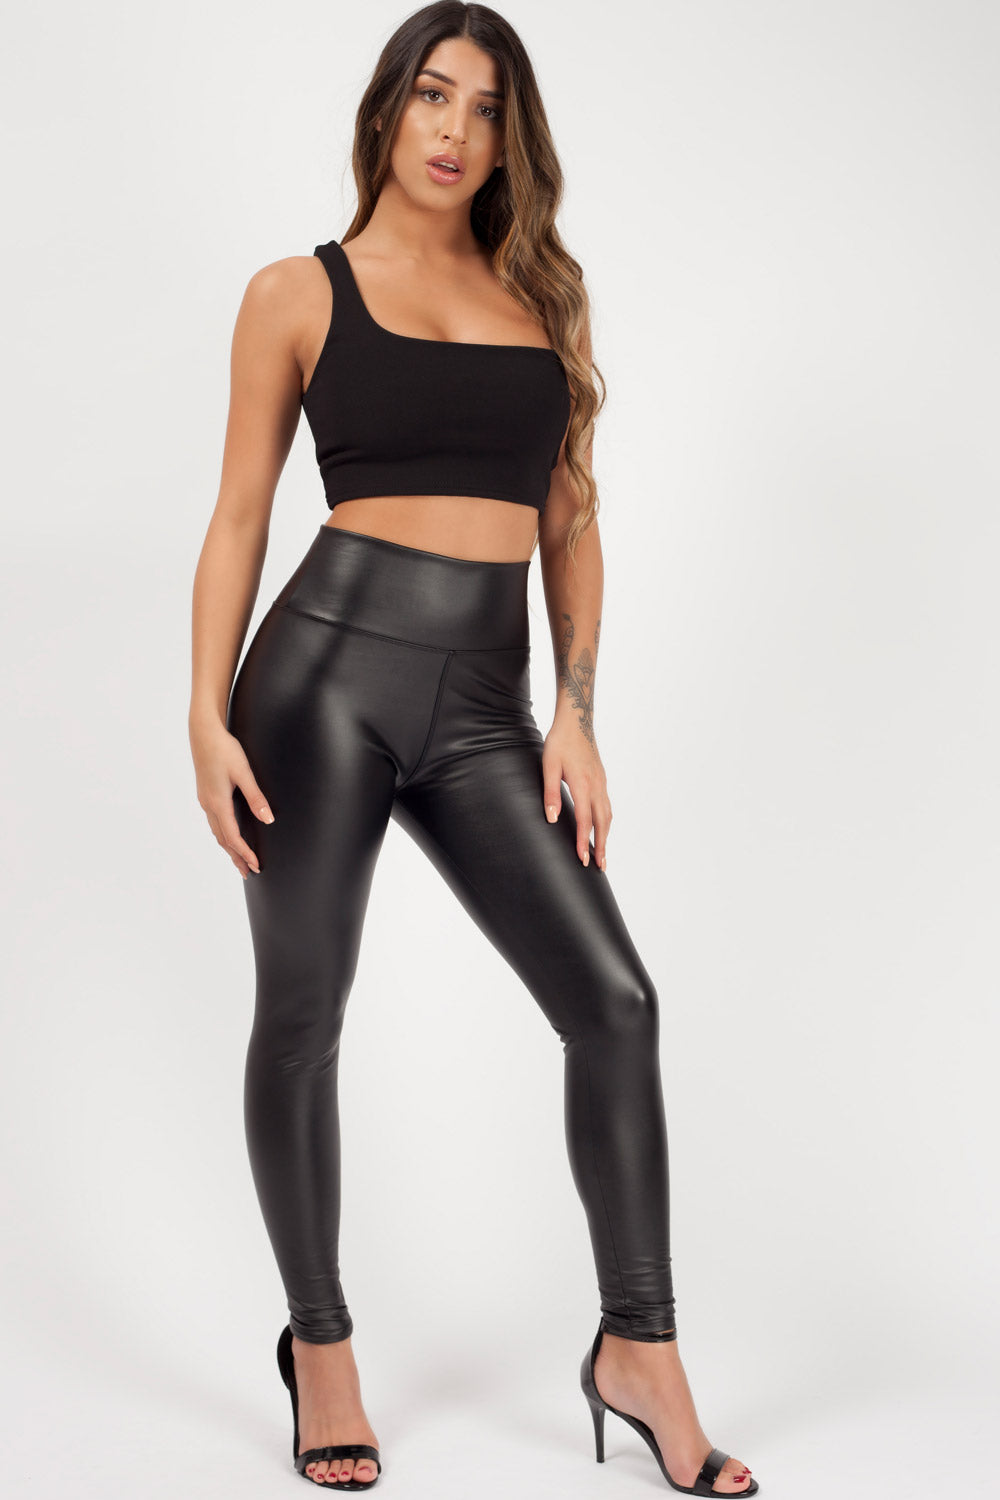 high waist leather look leggings black styledup fashion